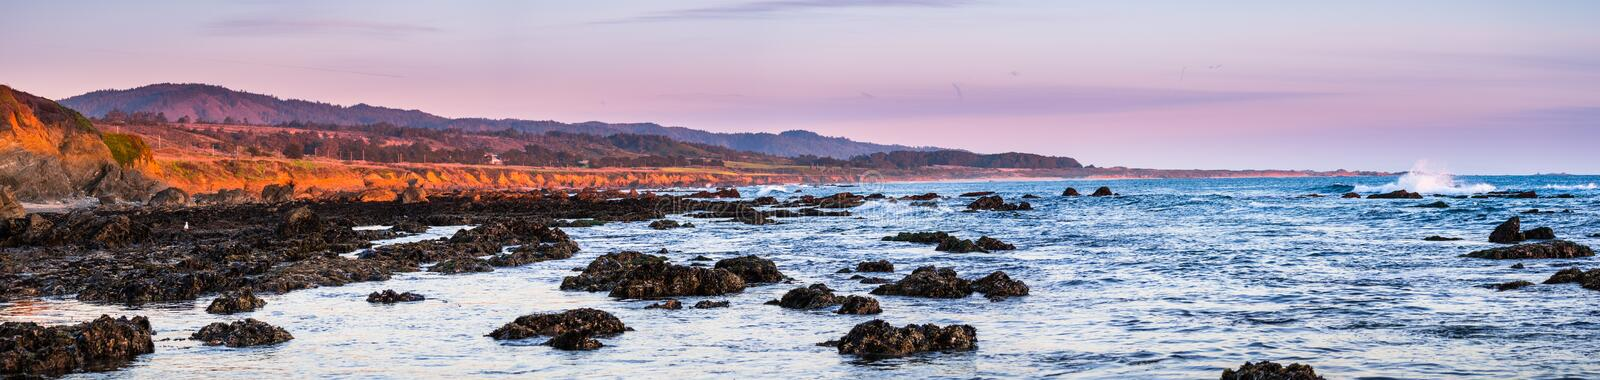 Panoramic view of the dramatic Pacific Ocean coastline at sunset, during low tide, Santa Cruz mountains in the background; San stock photo